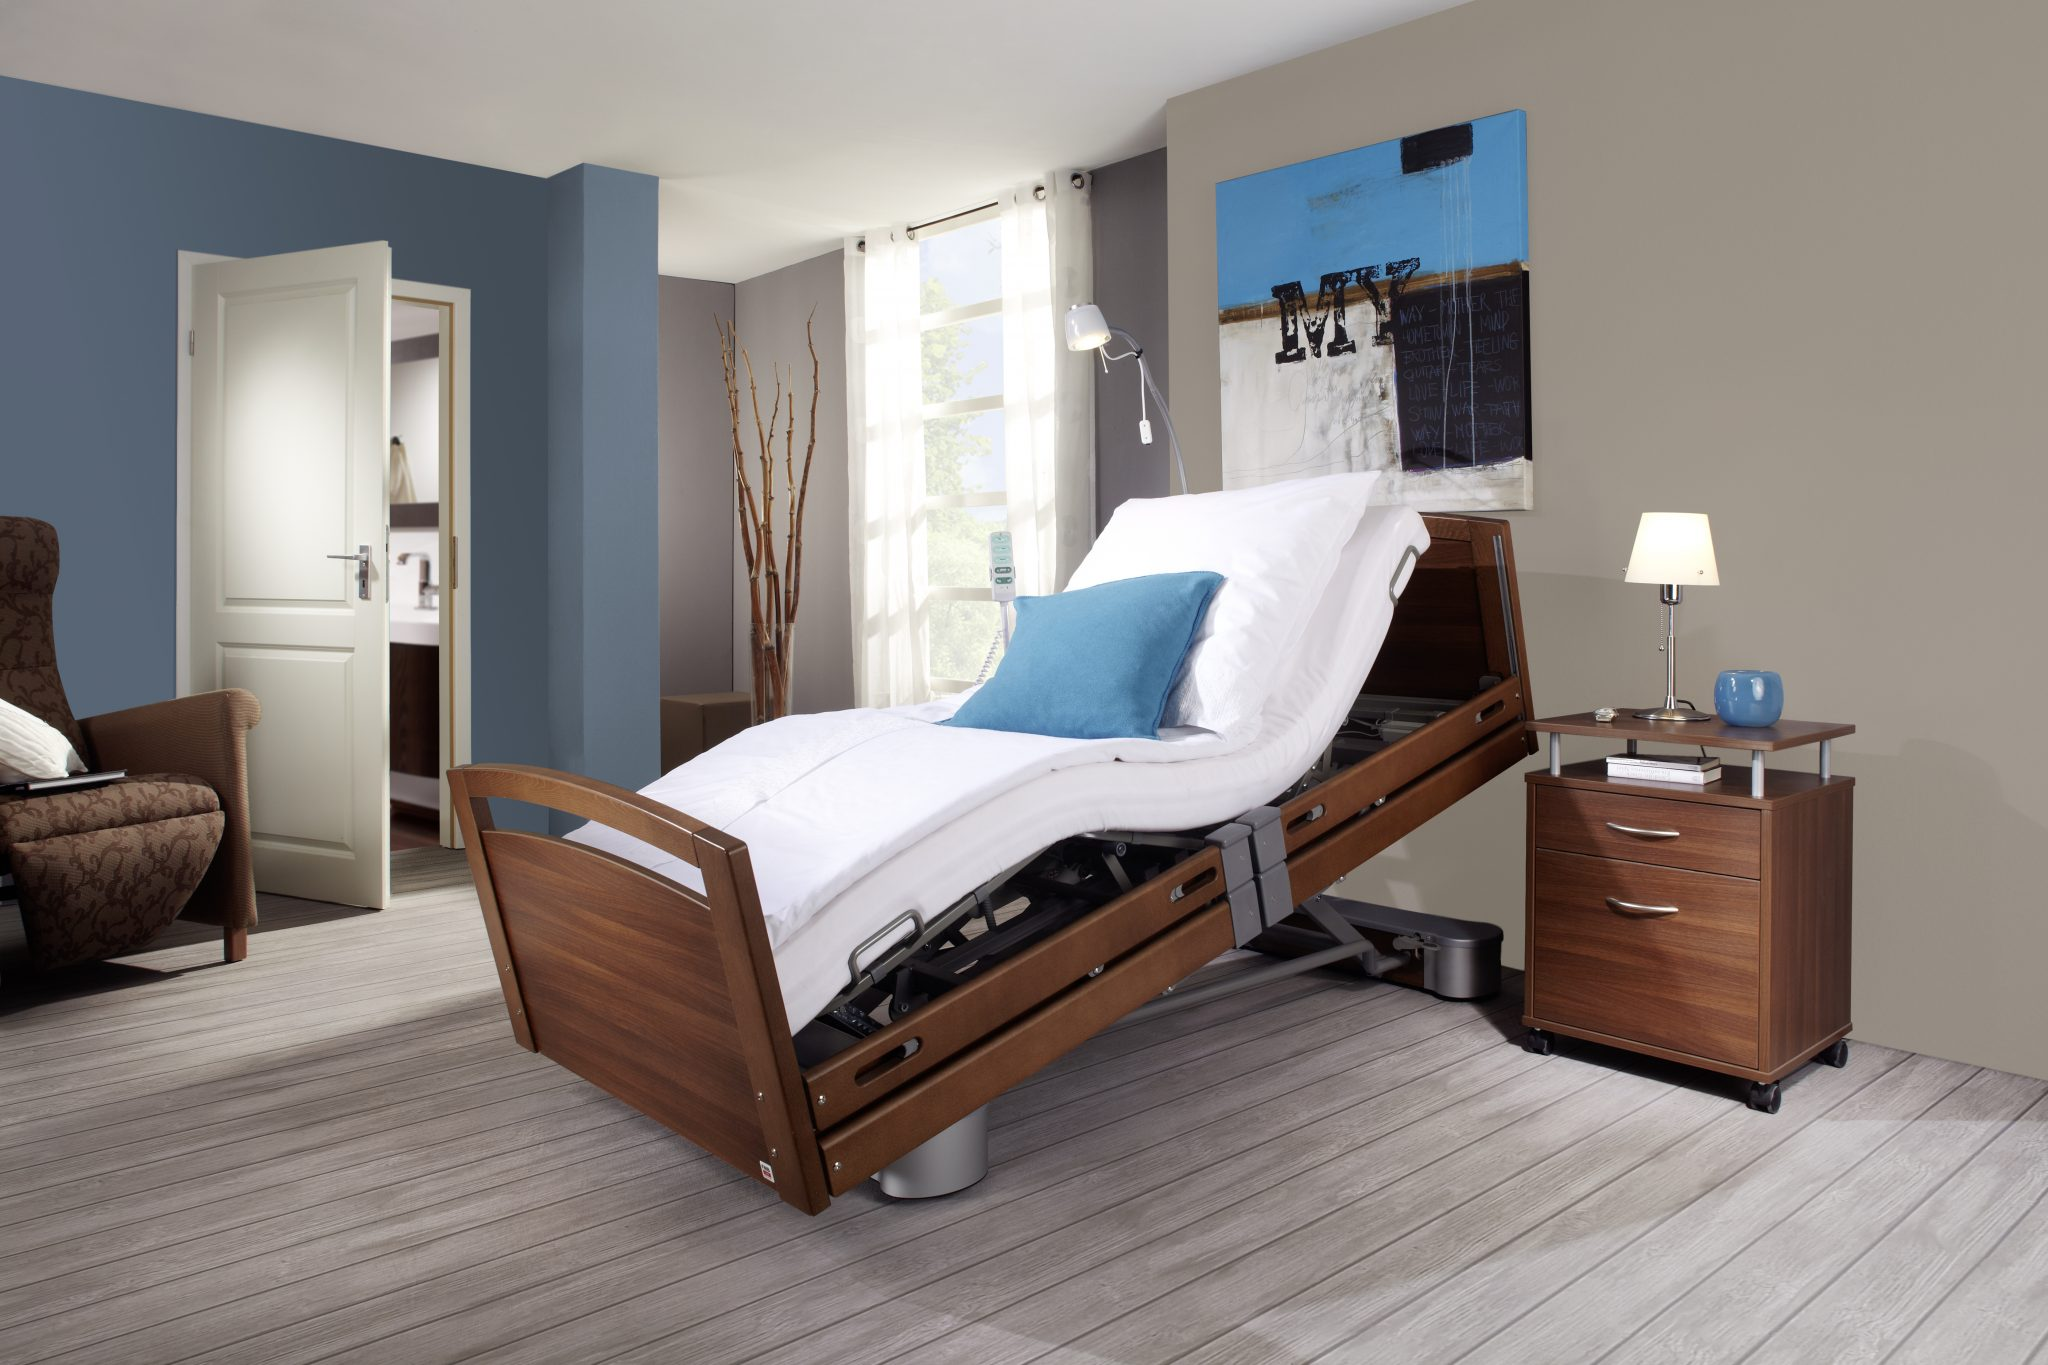 What Is The Trendelenburg Position On Hospital Beds